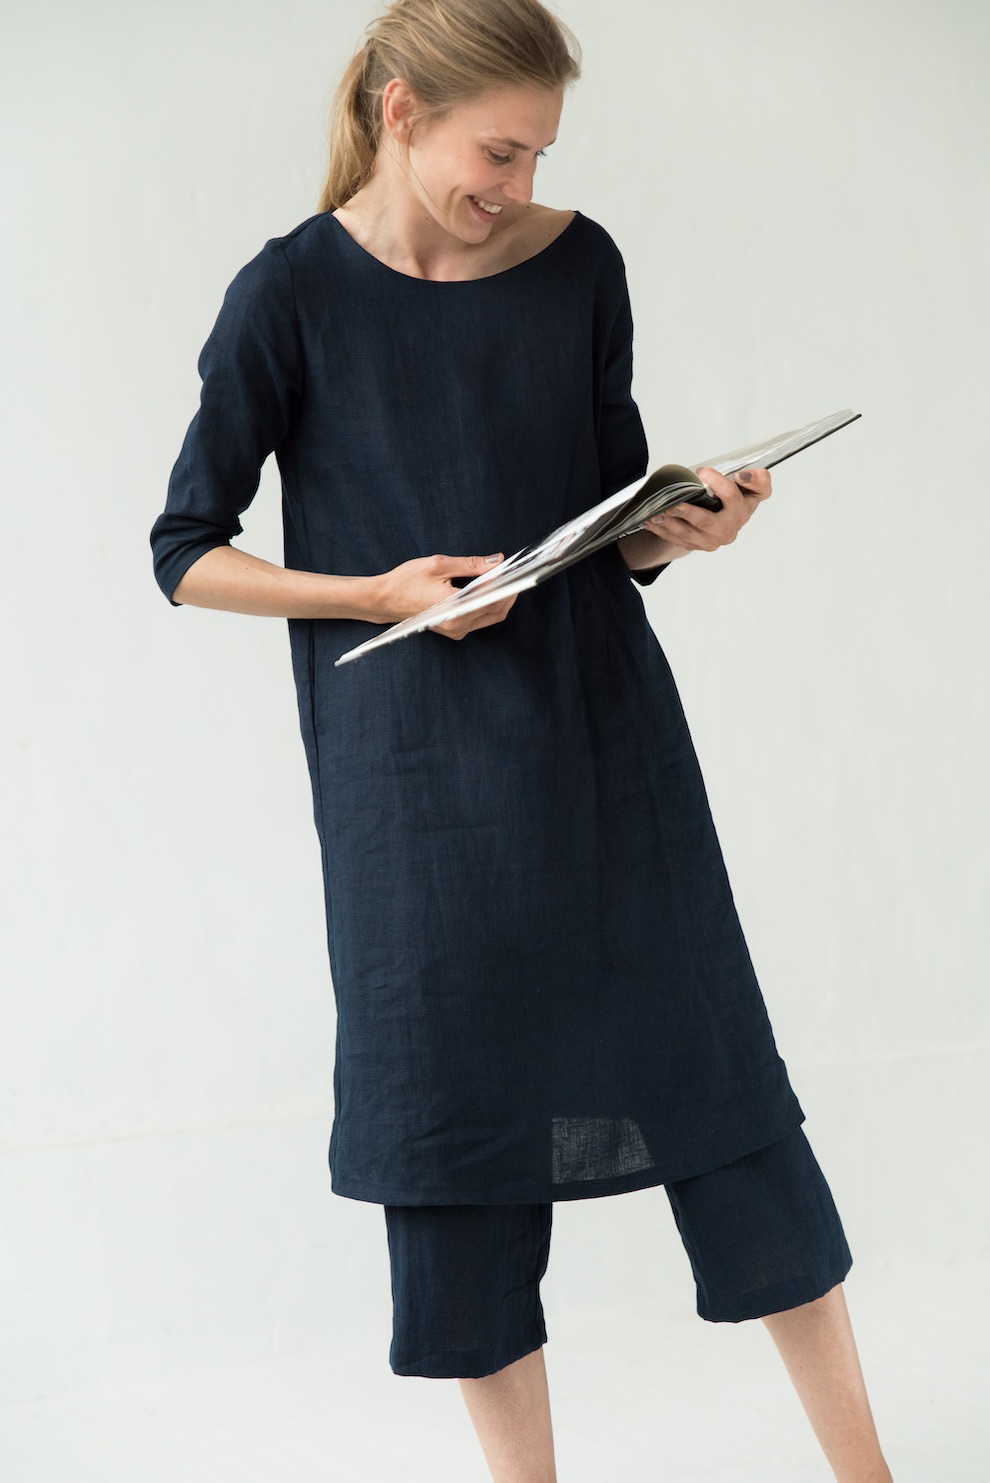 Linen shirt dress in deep blue MIX&MATCH